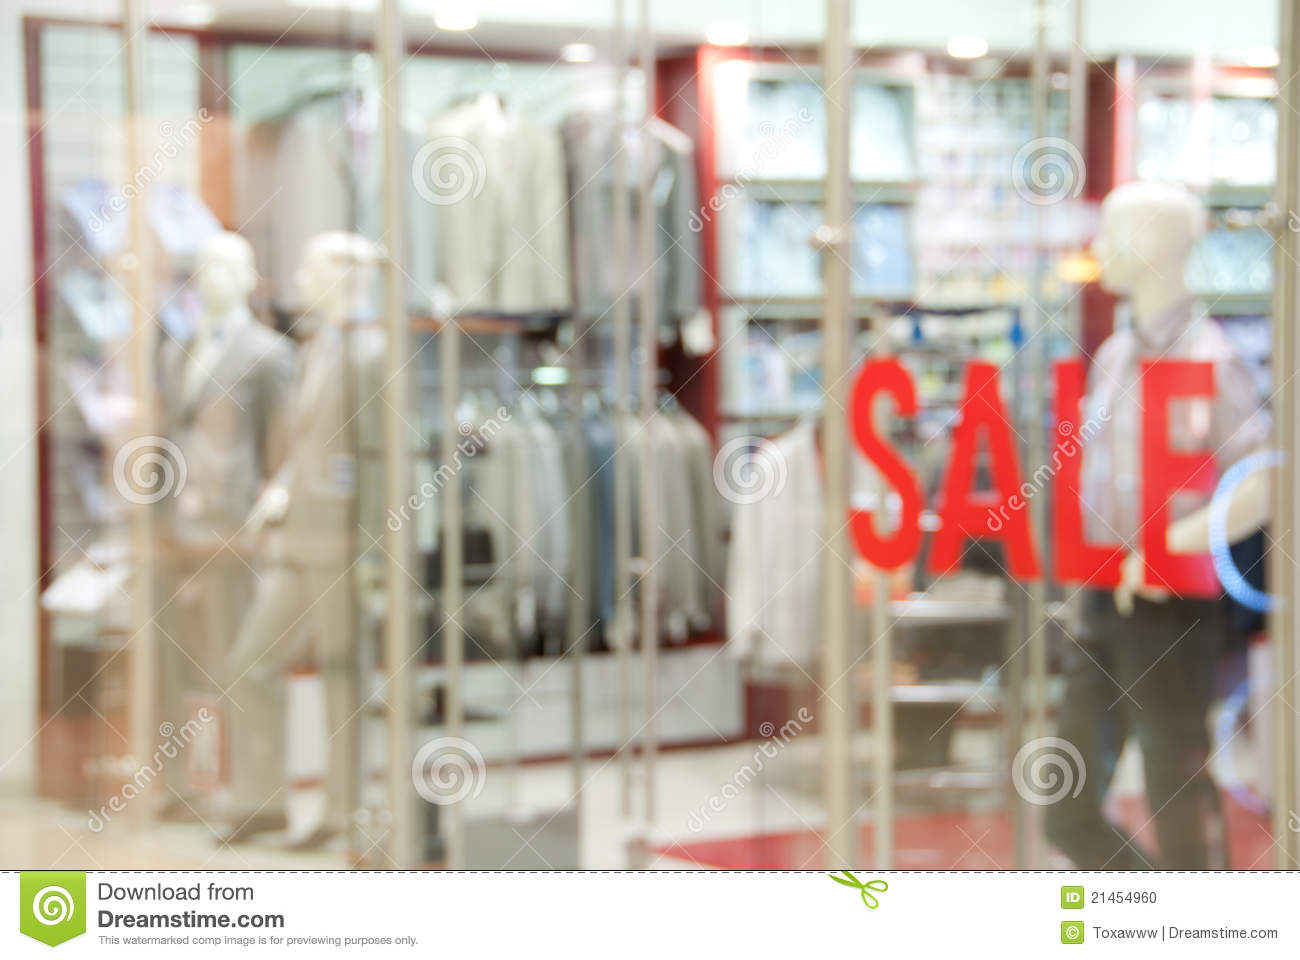 Storefront of men s clothing shop during the sale. Image not in focus